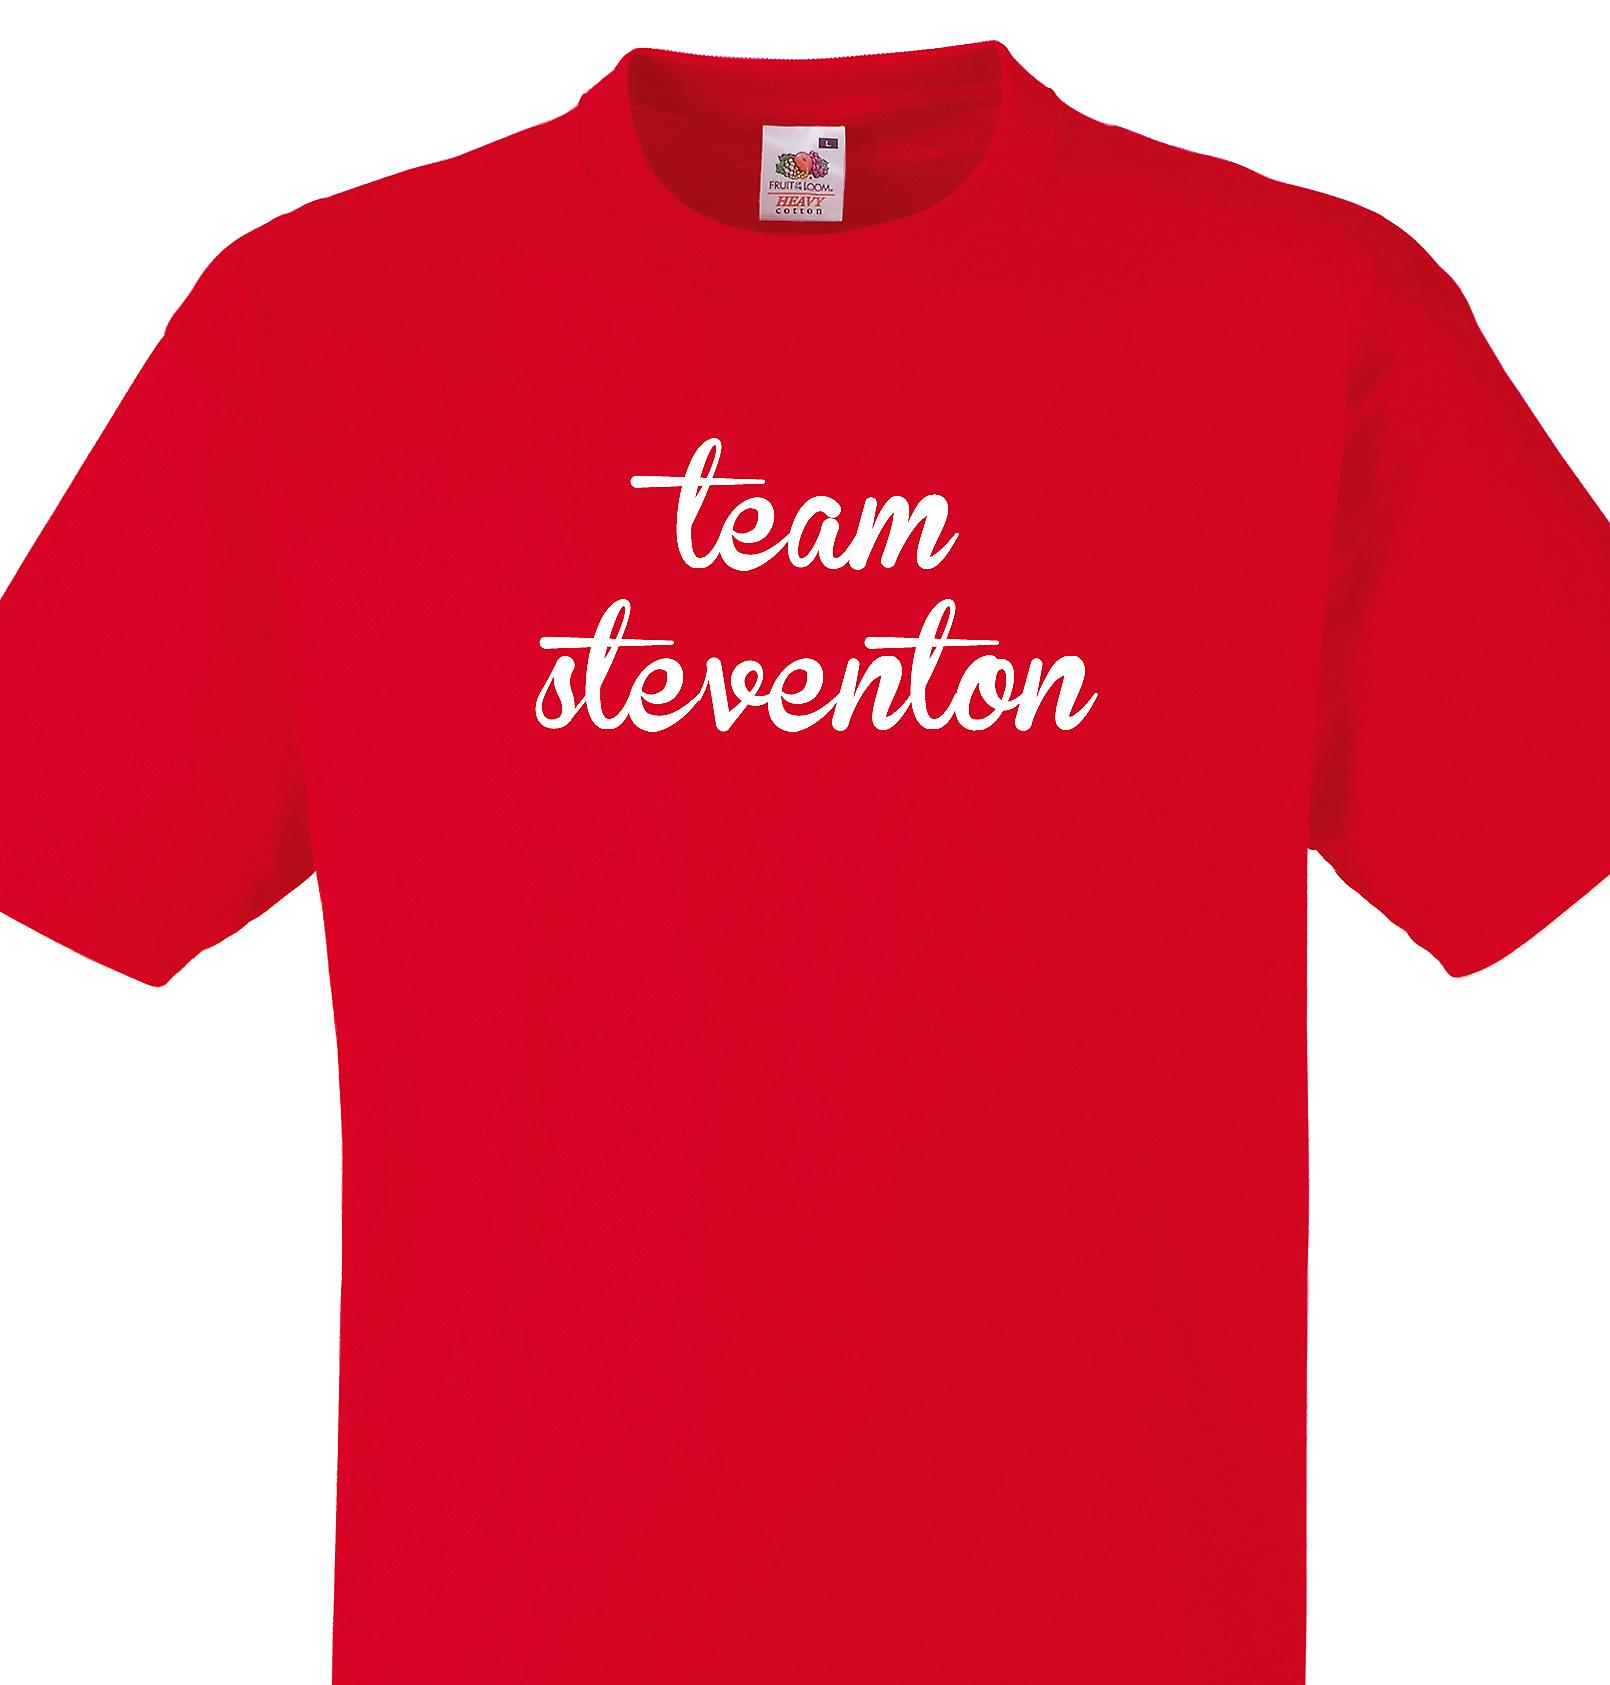 Team Steventon Red T shirt